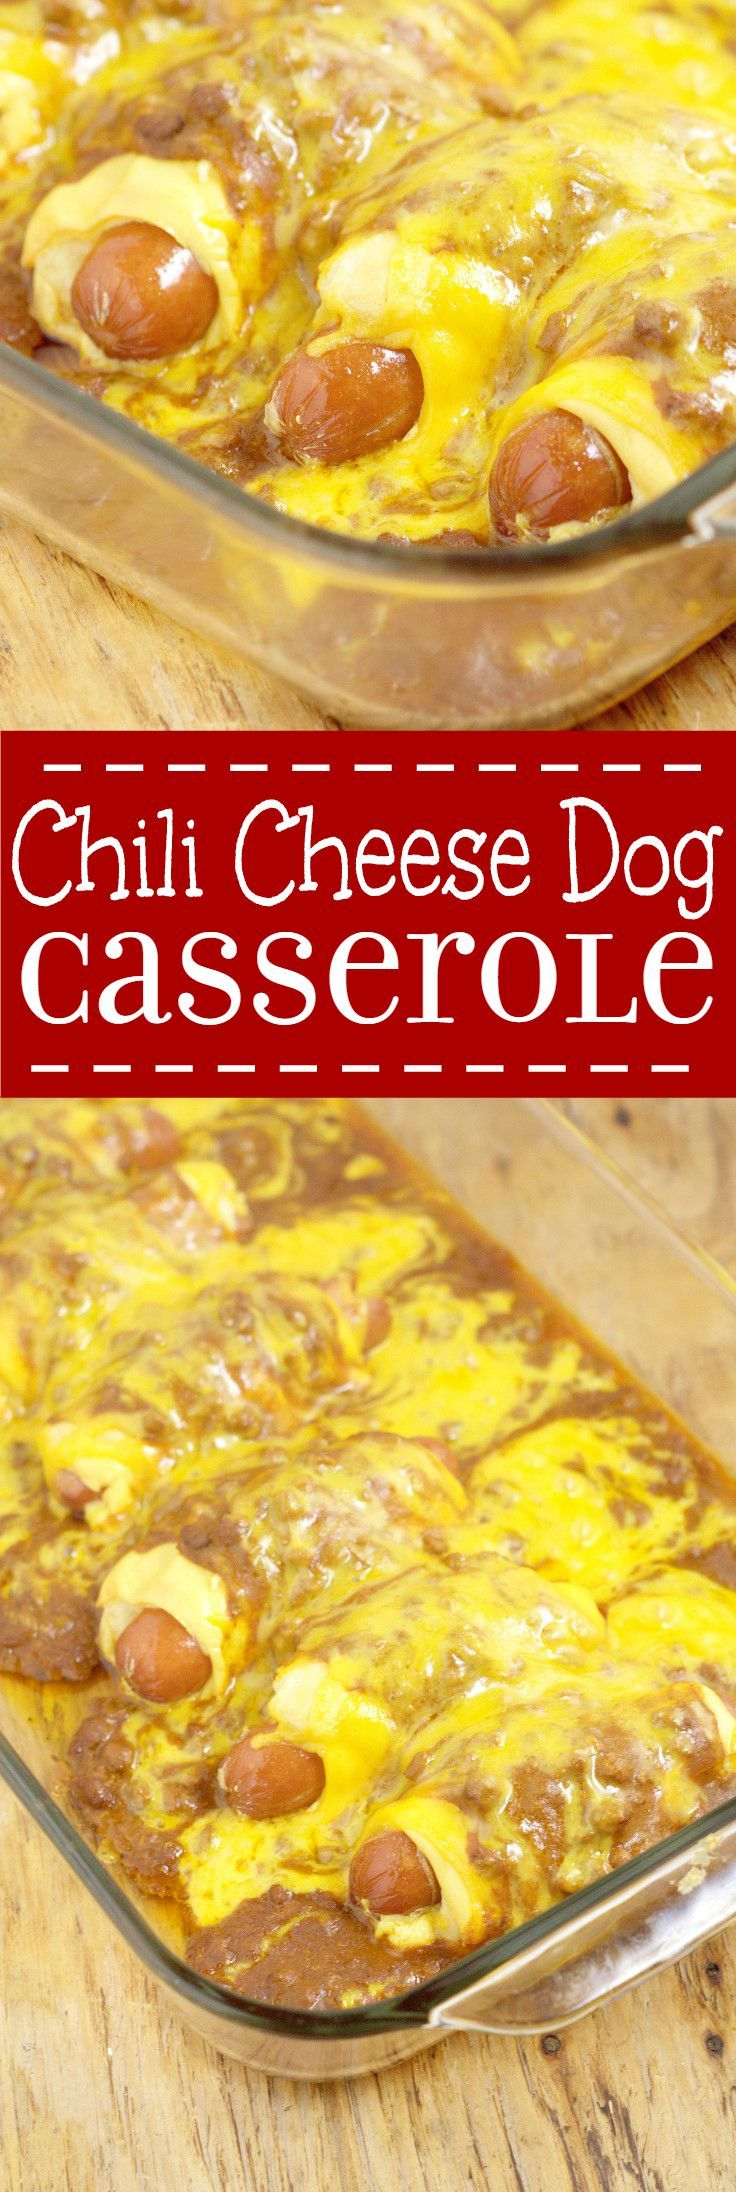 Chili Cheese Dog Casserole Recipe- A quick and easy family dinner idea recipe inspired by chili cheese dogs combined with the comfort and ease of a casserole. OMG. So cheesy!